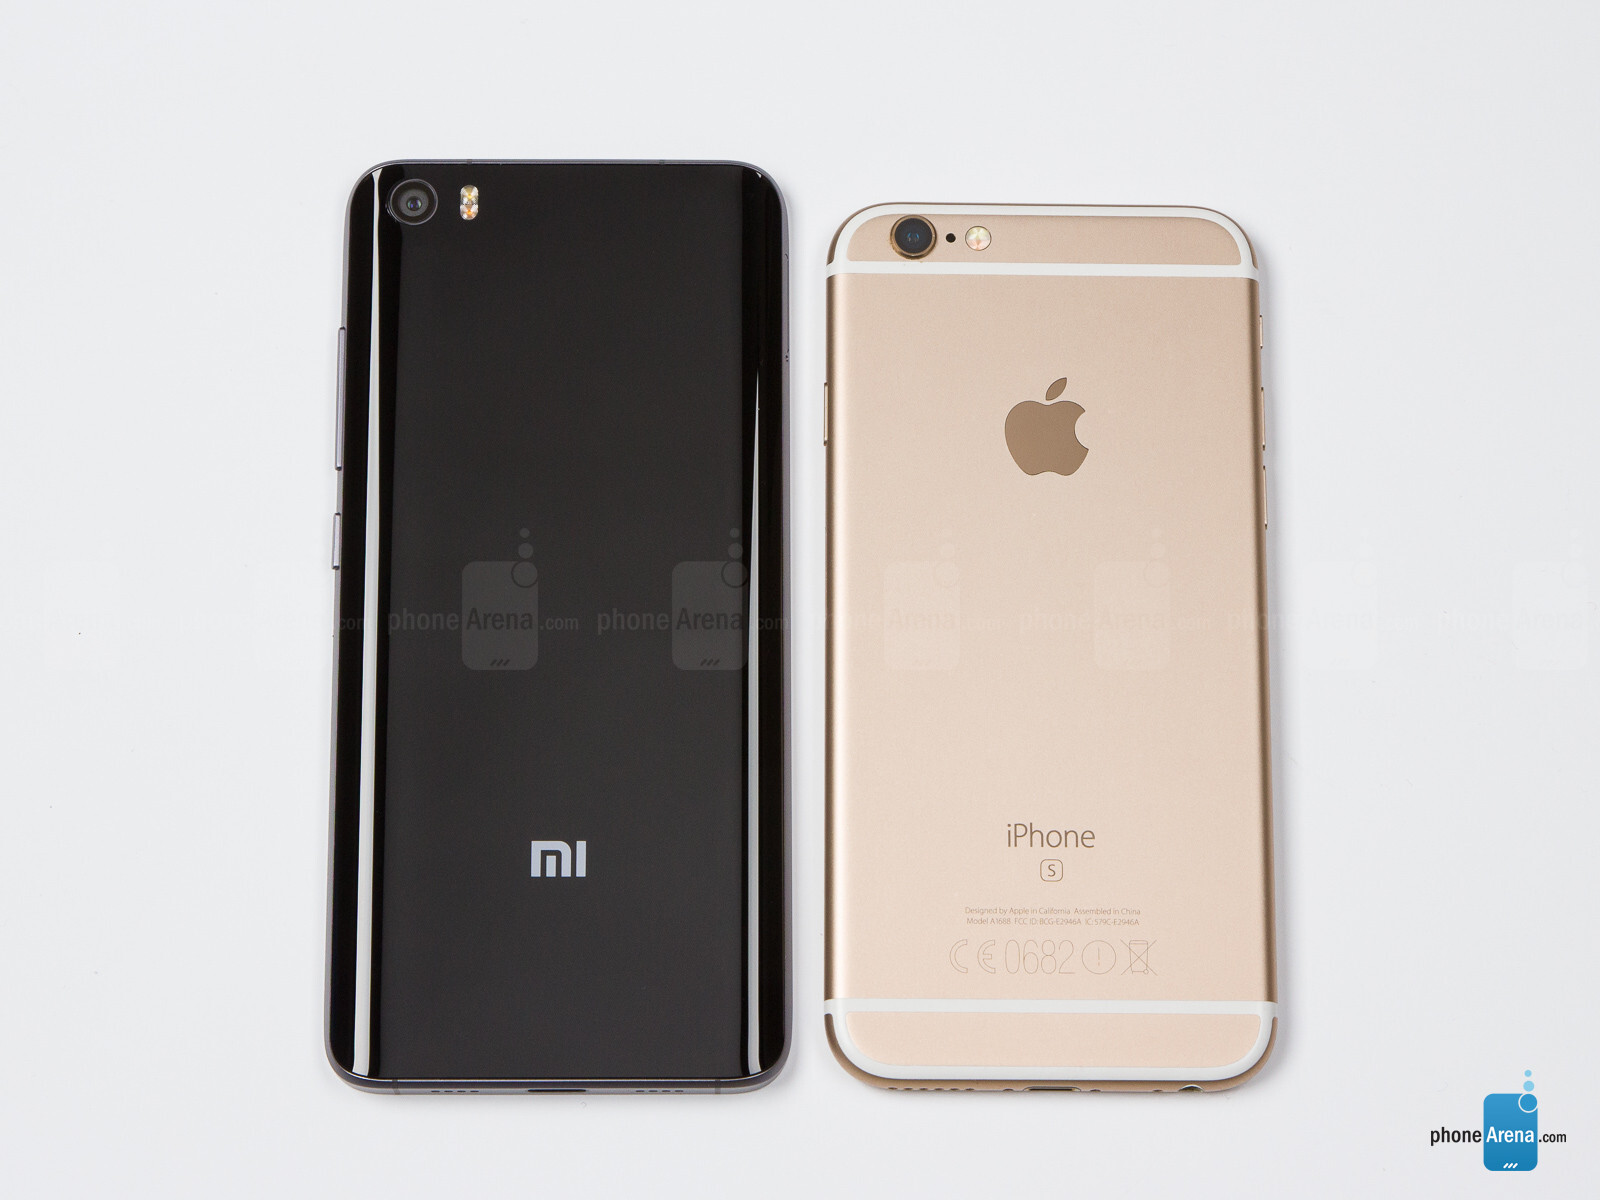 31c67abb0b5 Xiaomi Mi 5 vs Apple iPhone 6s - Battery Life and Conclusion ...